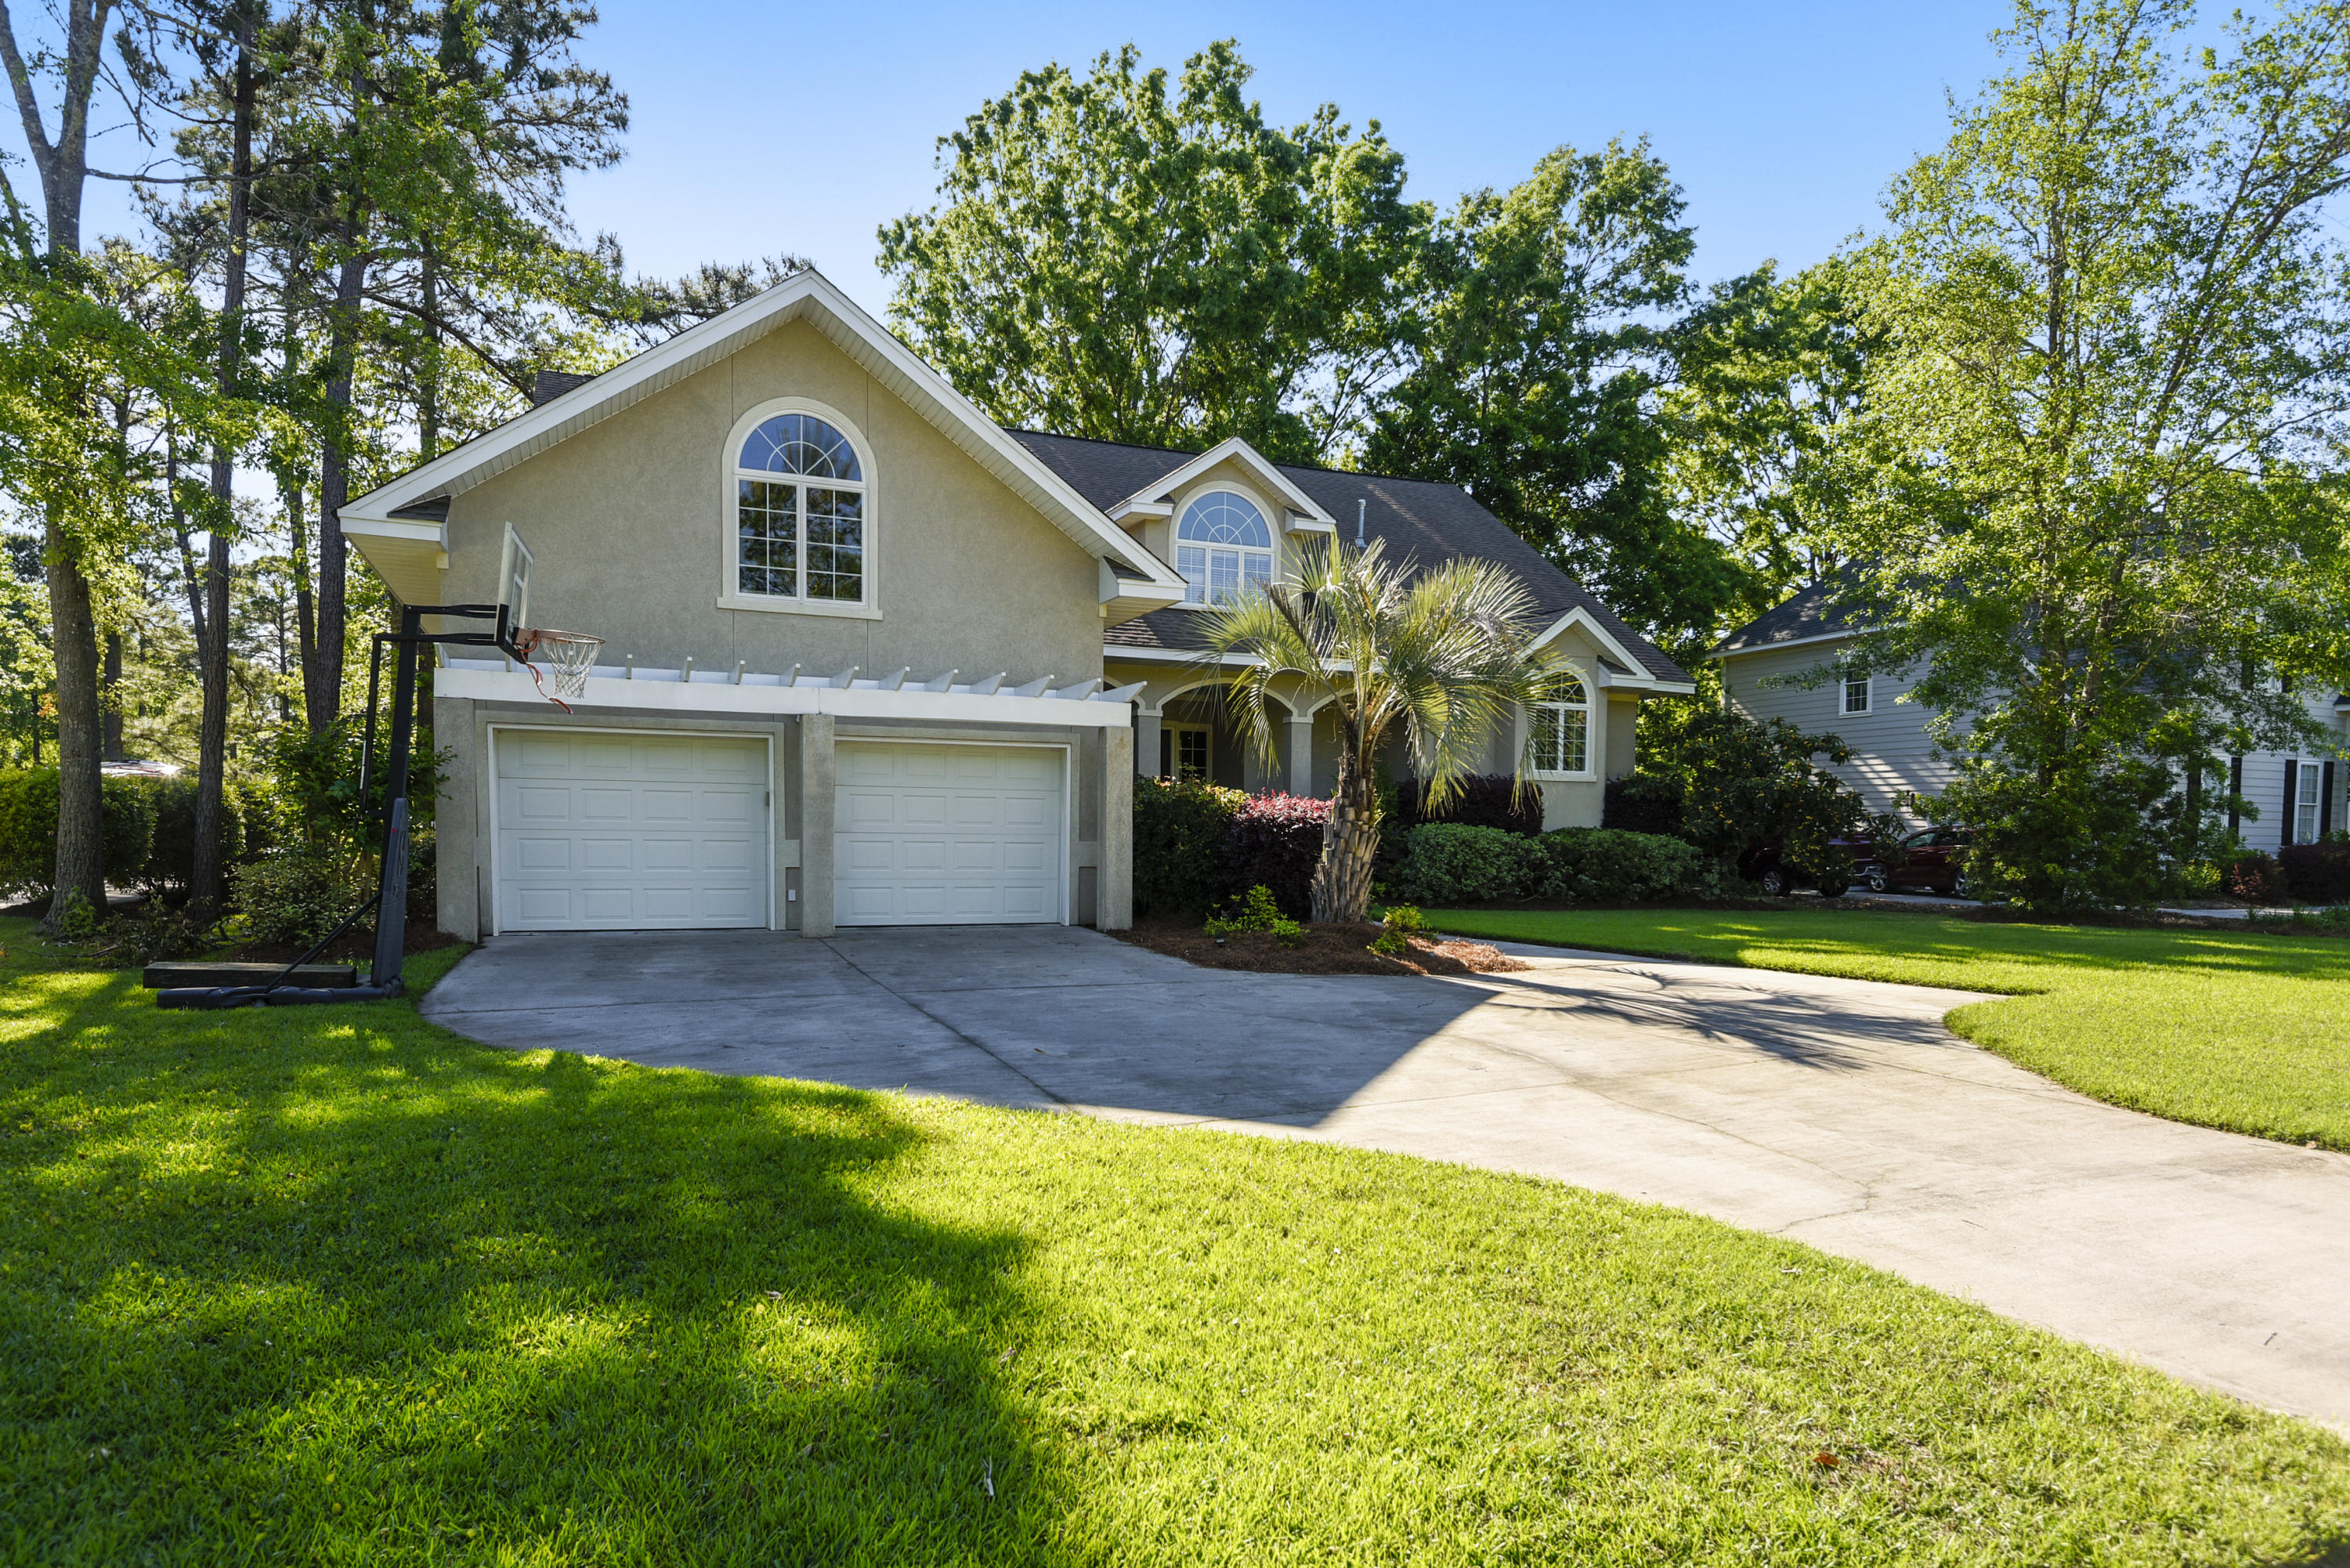 Coosaw Creek Country Club Homes For Sale - 8855 Fairway Woods, North Charleston, SC - 58